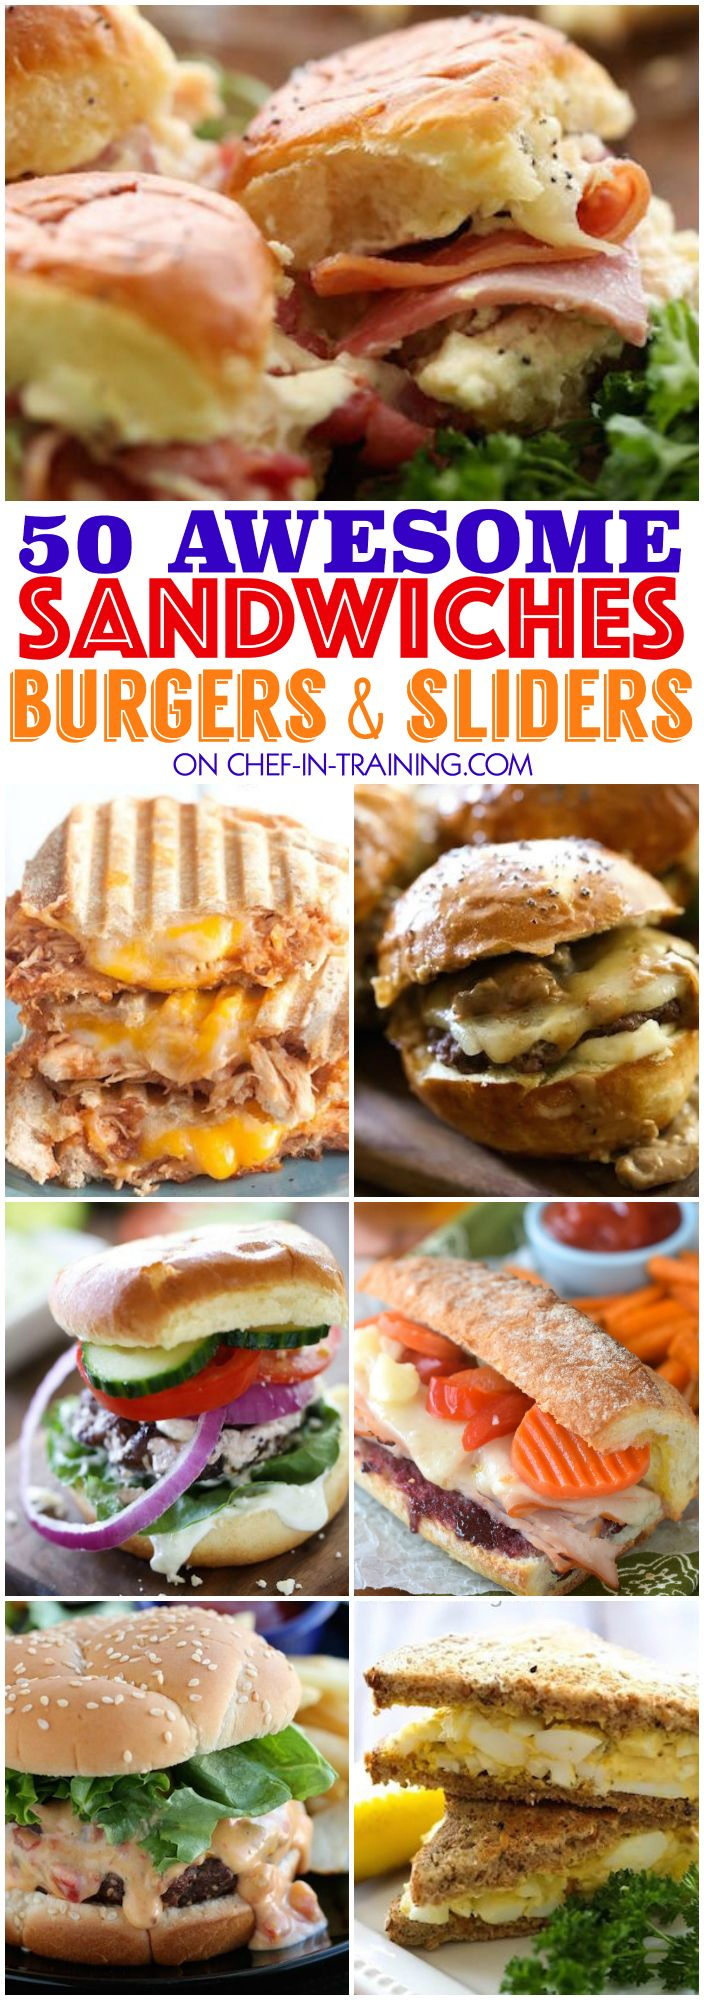 50 Awesome Sandwiches, Burgers and Sliders…. this list is the perfect GO TO for spring and summer! So many yummy unique and